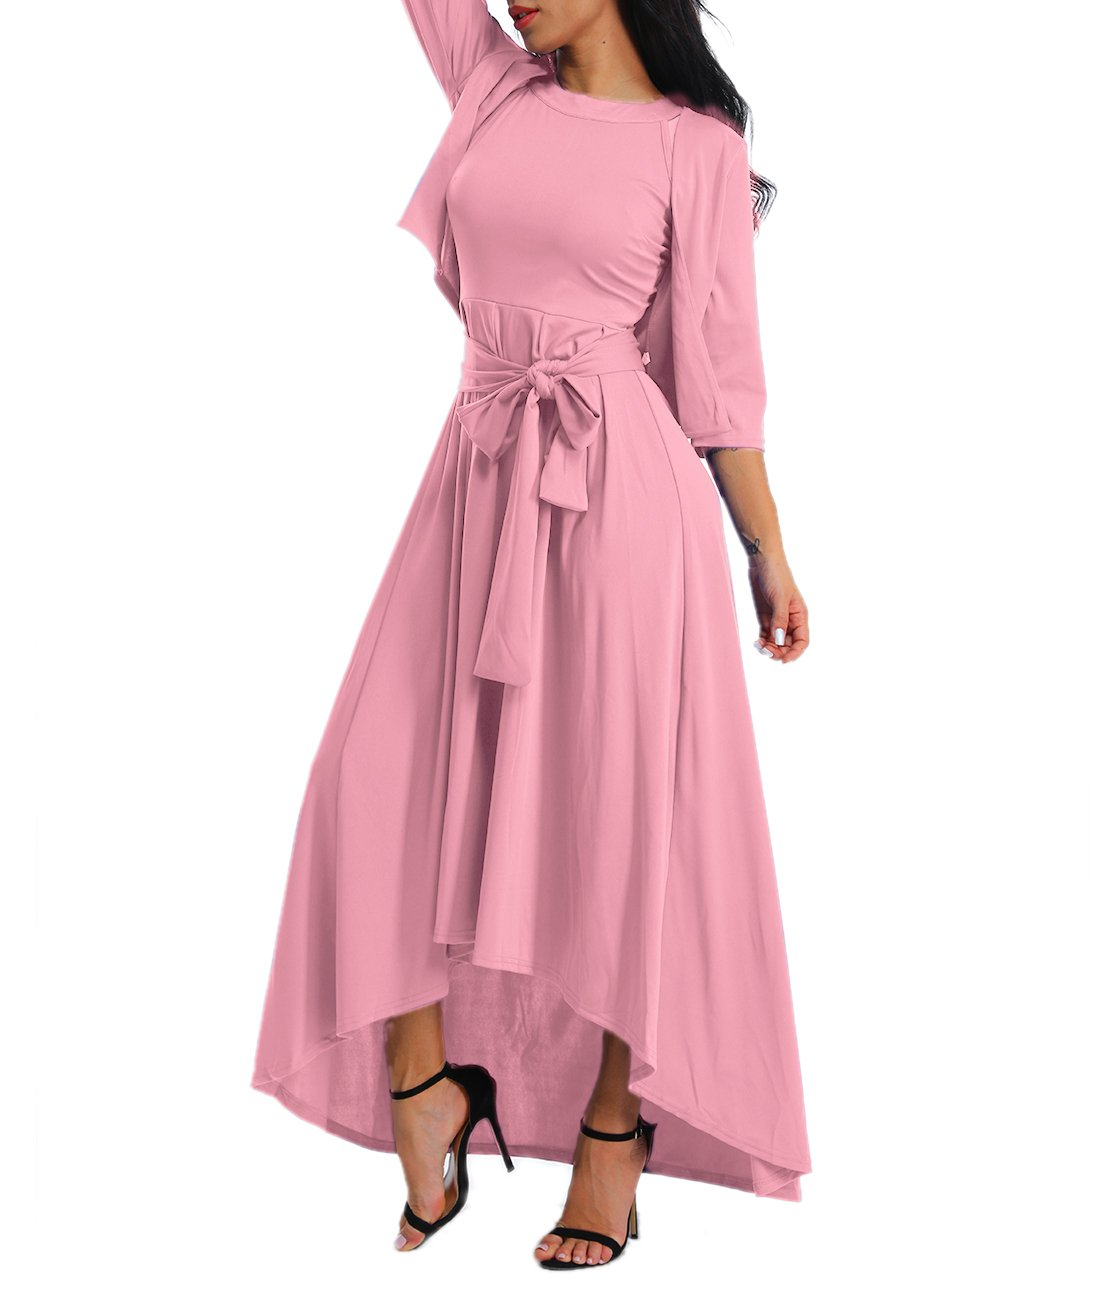 Lalagen Womens Plus Size Sleeveless Belted Party Maxi Dress with Cardigan by Lalagen (Image #2)